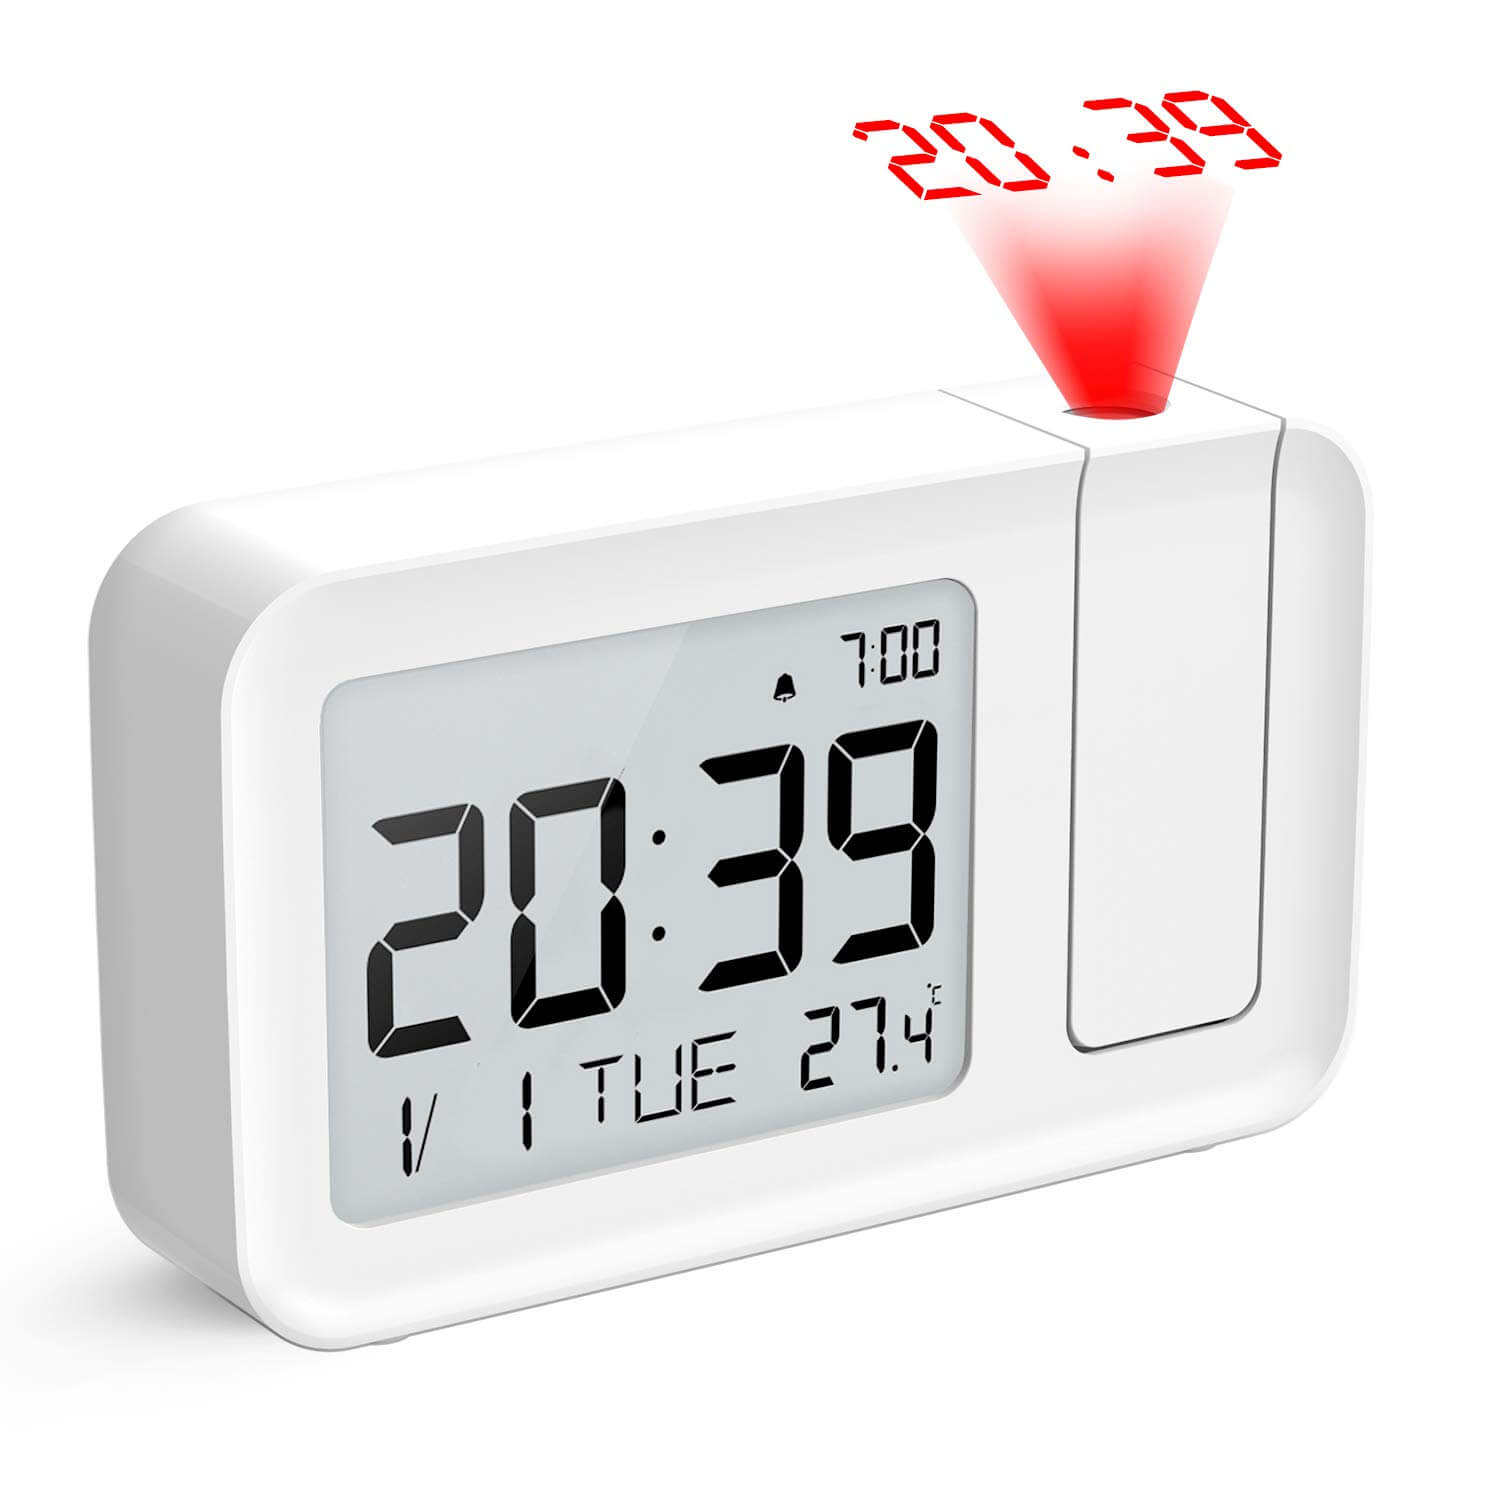 Electronic LCD Projector Alarm Clock Time Temperature Digital Display Desk Table Bedside Clocks